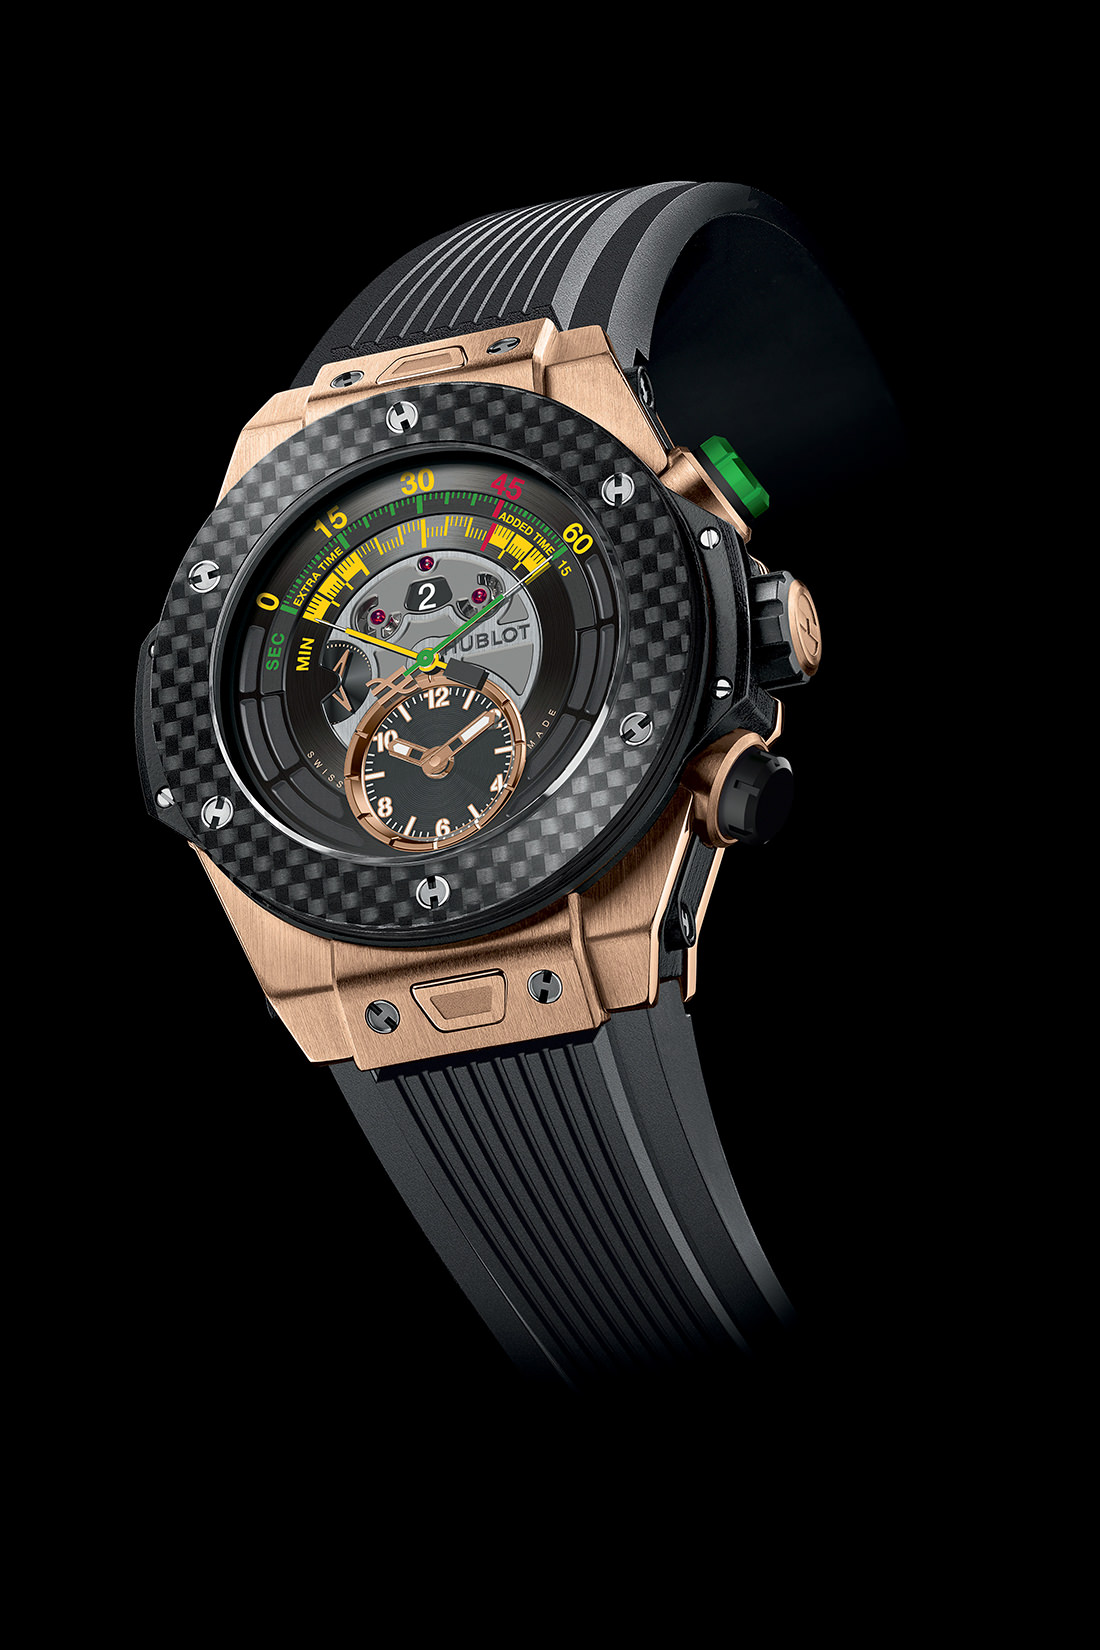 hublot-big-bang-unico-chrono-bi-retrograde-6